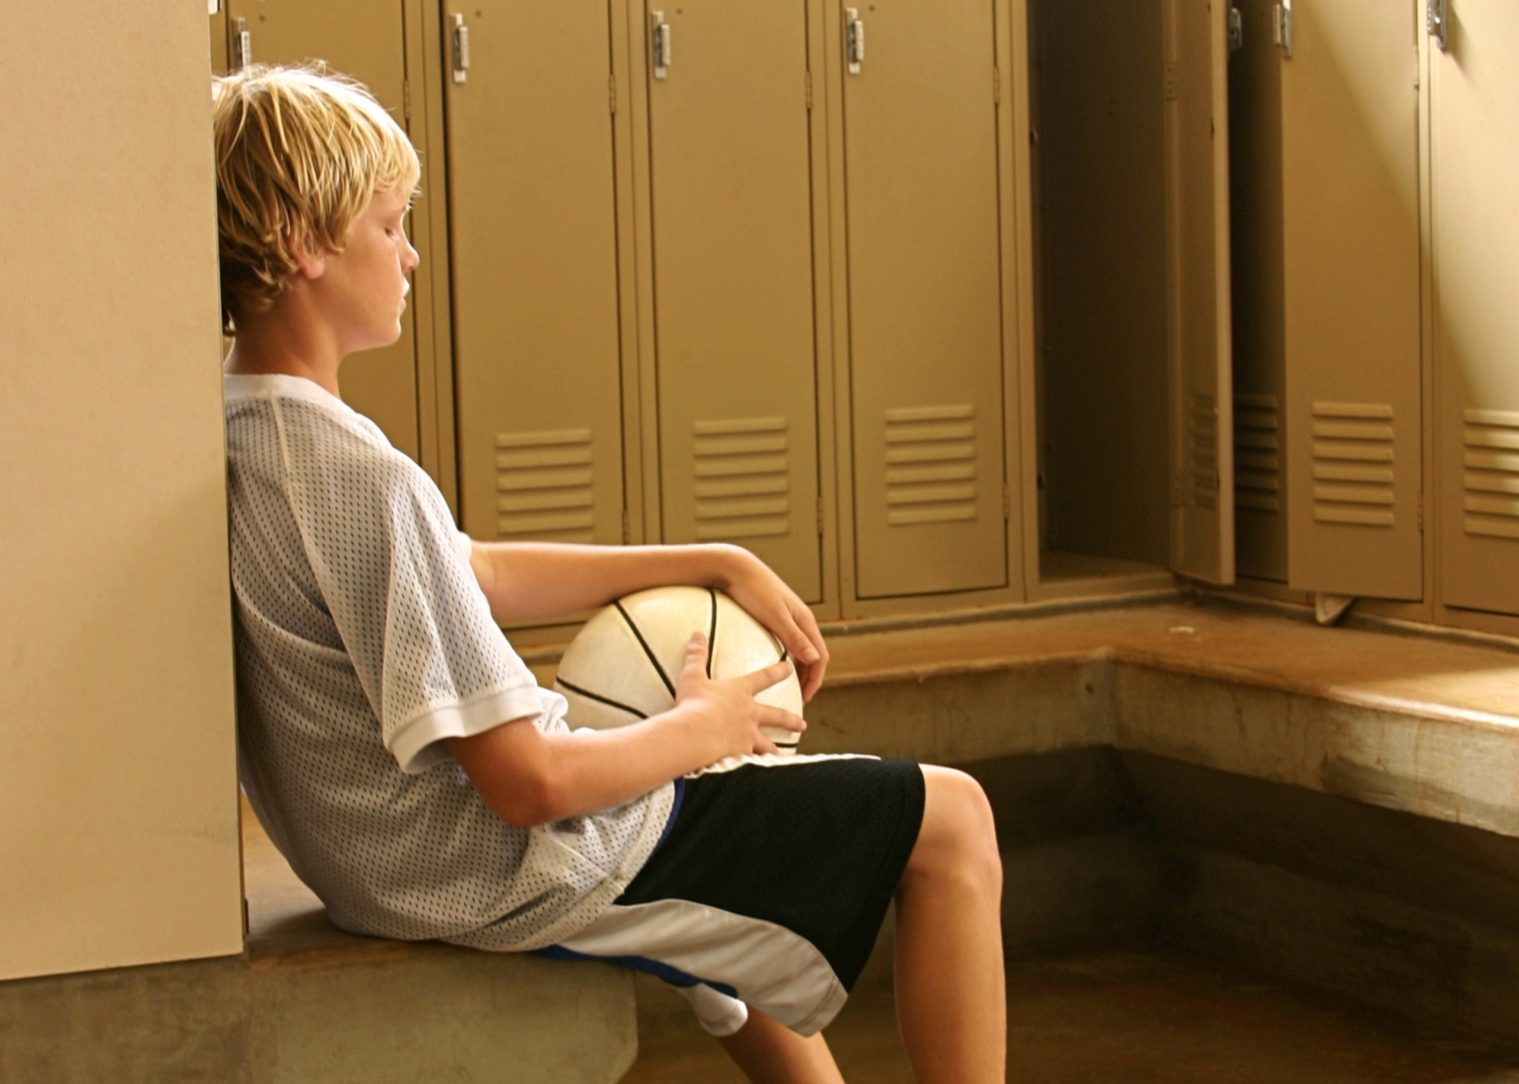 sad-basketball-kid-in-locker-room-cropped-e1460949638209.jpg (1519×1084)